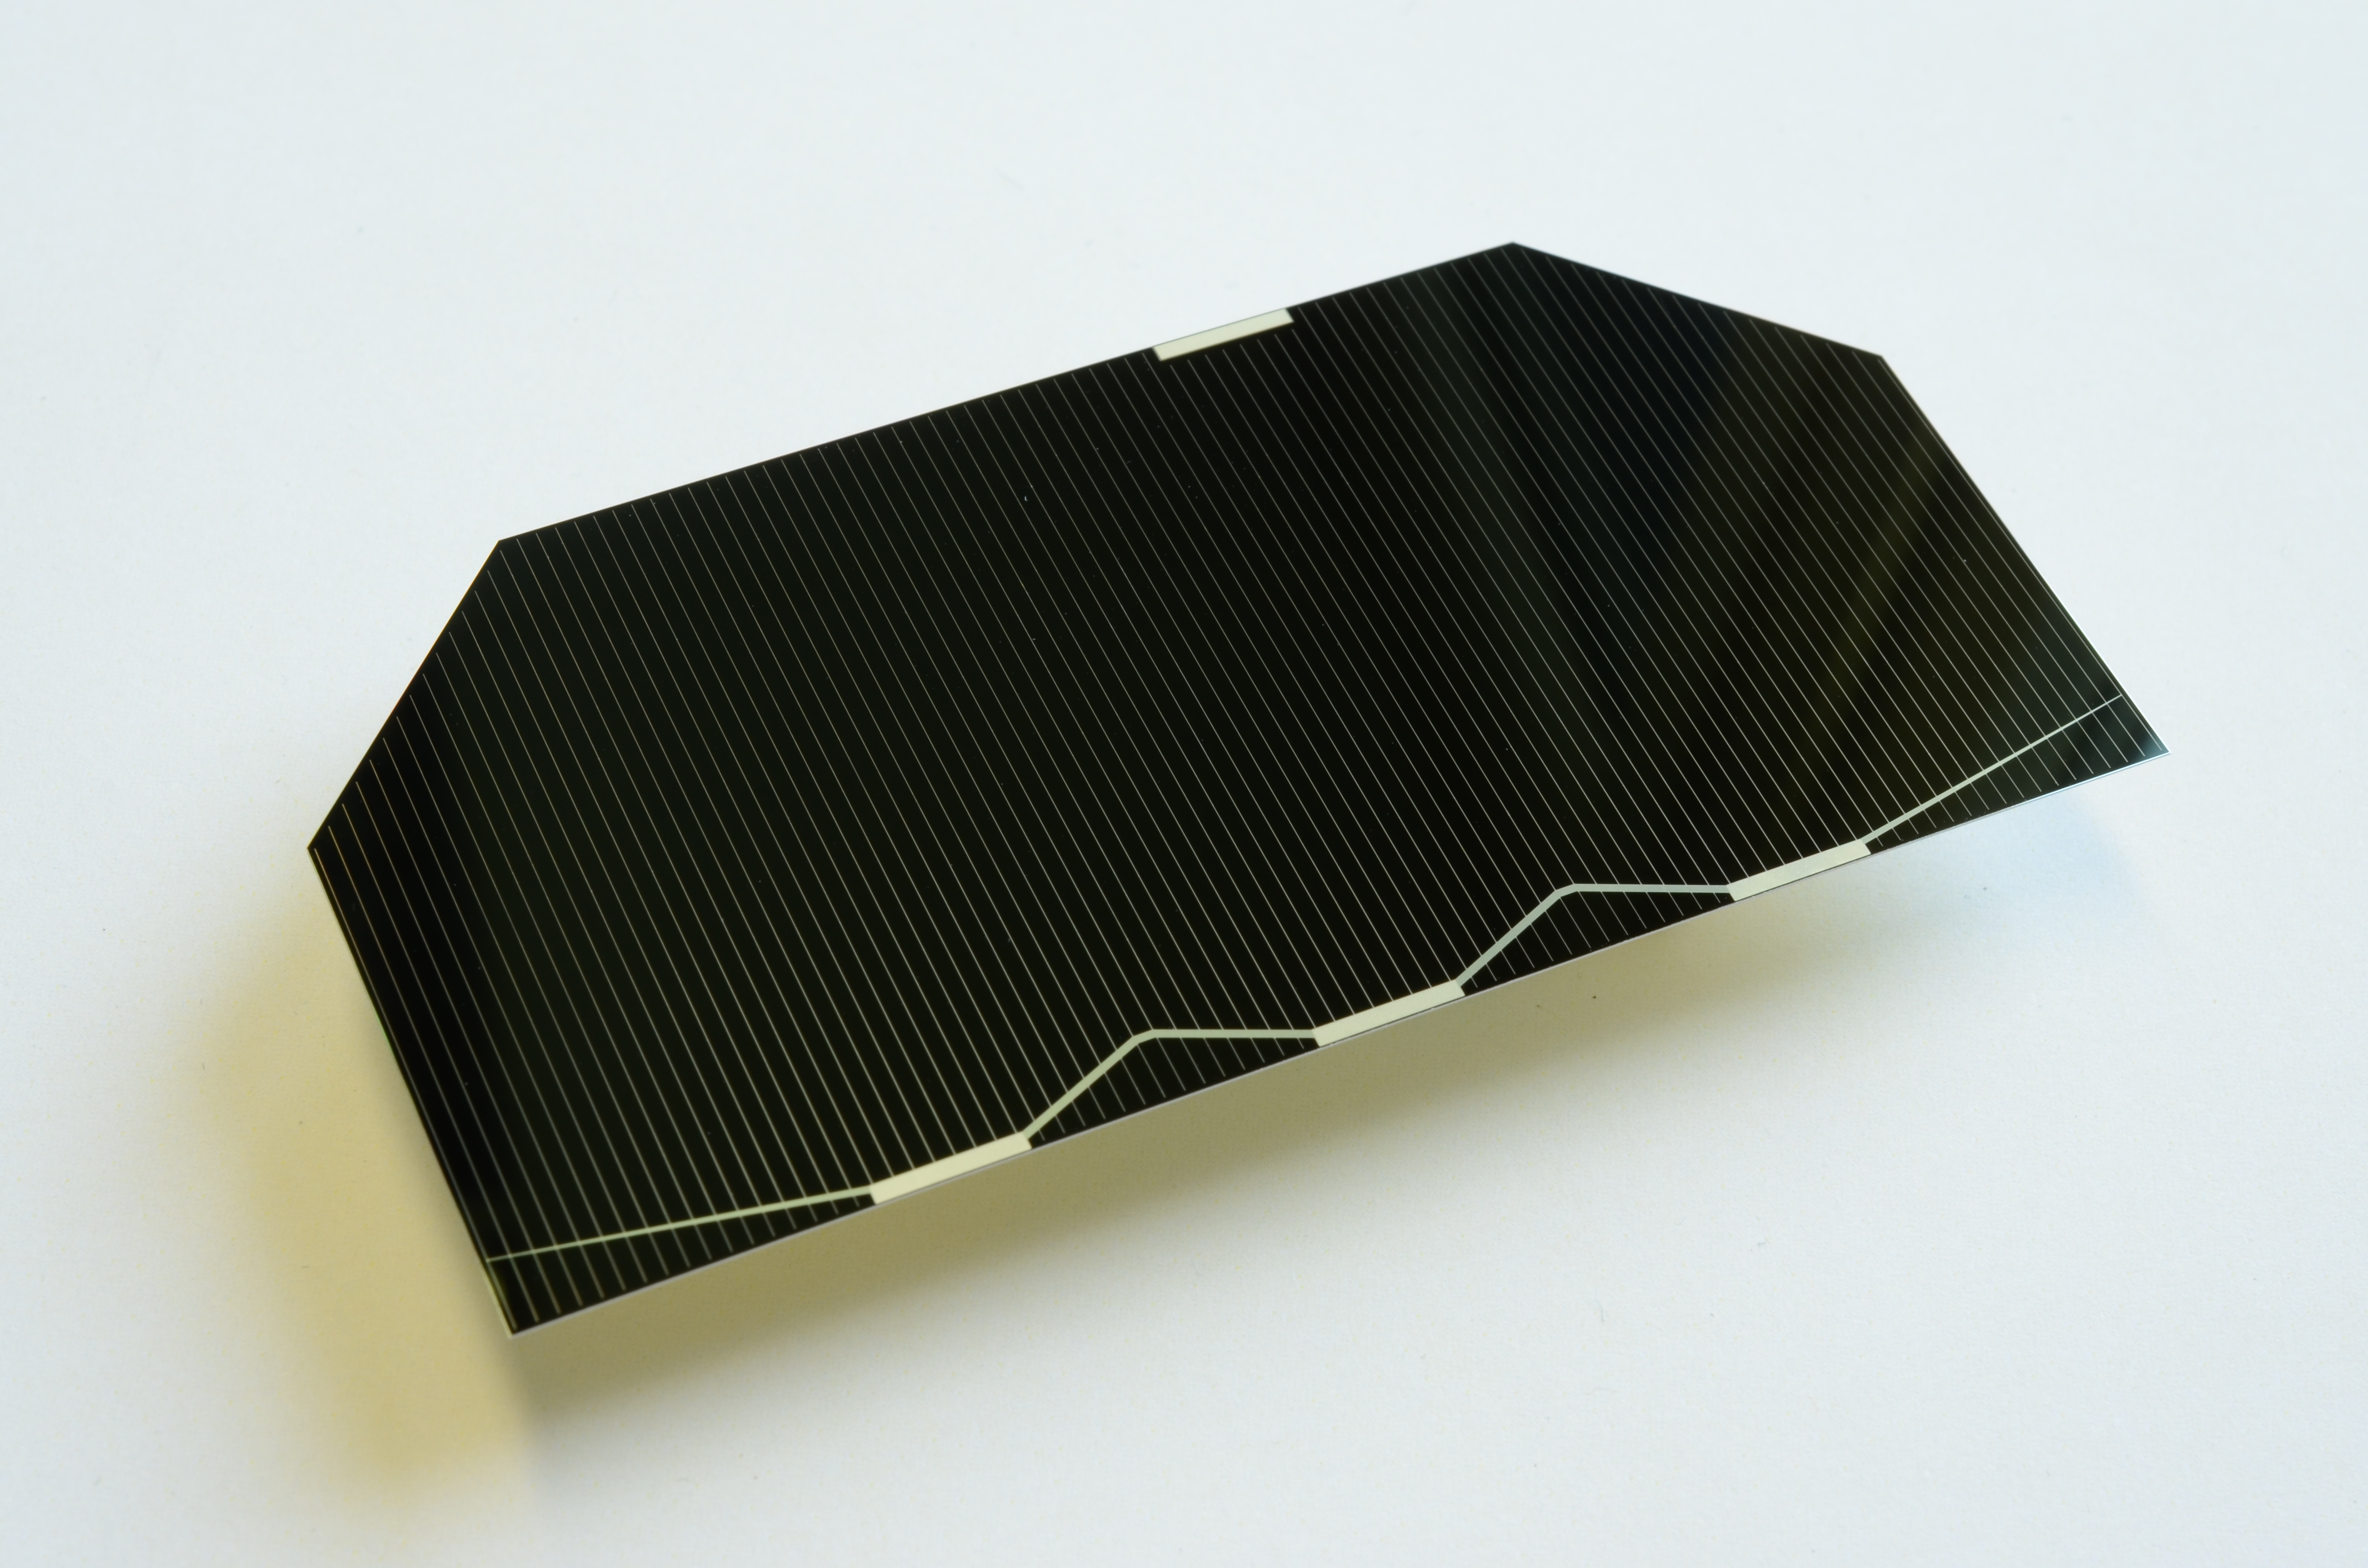 Space In Images 2014 04 30 Efficient Solar Cell